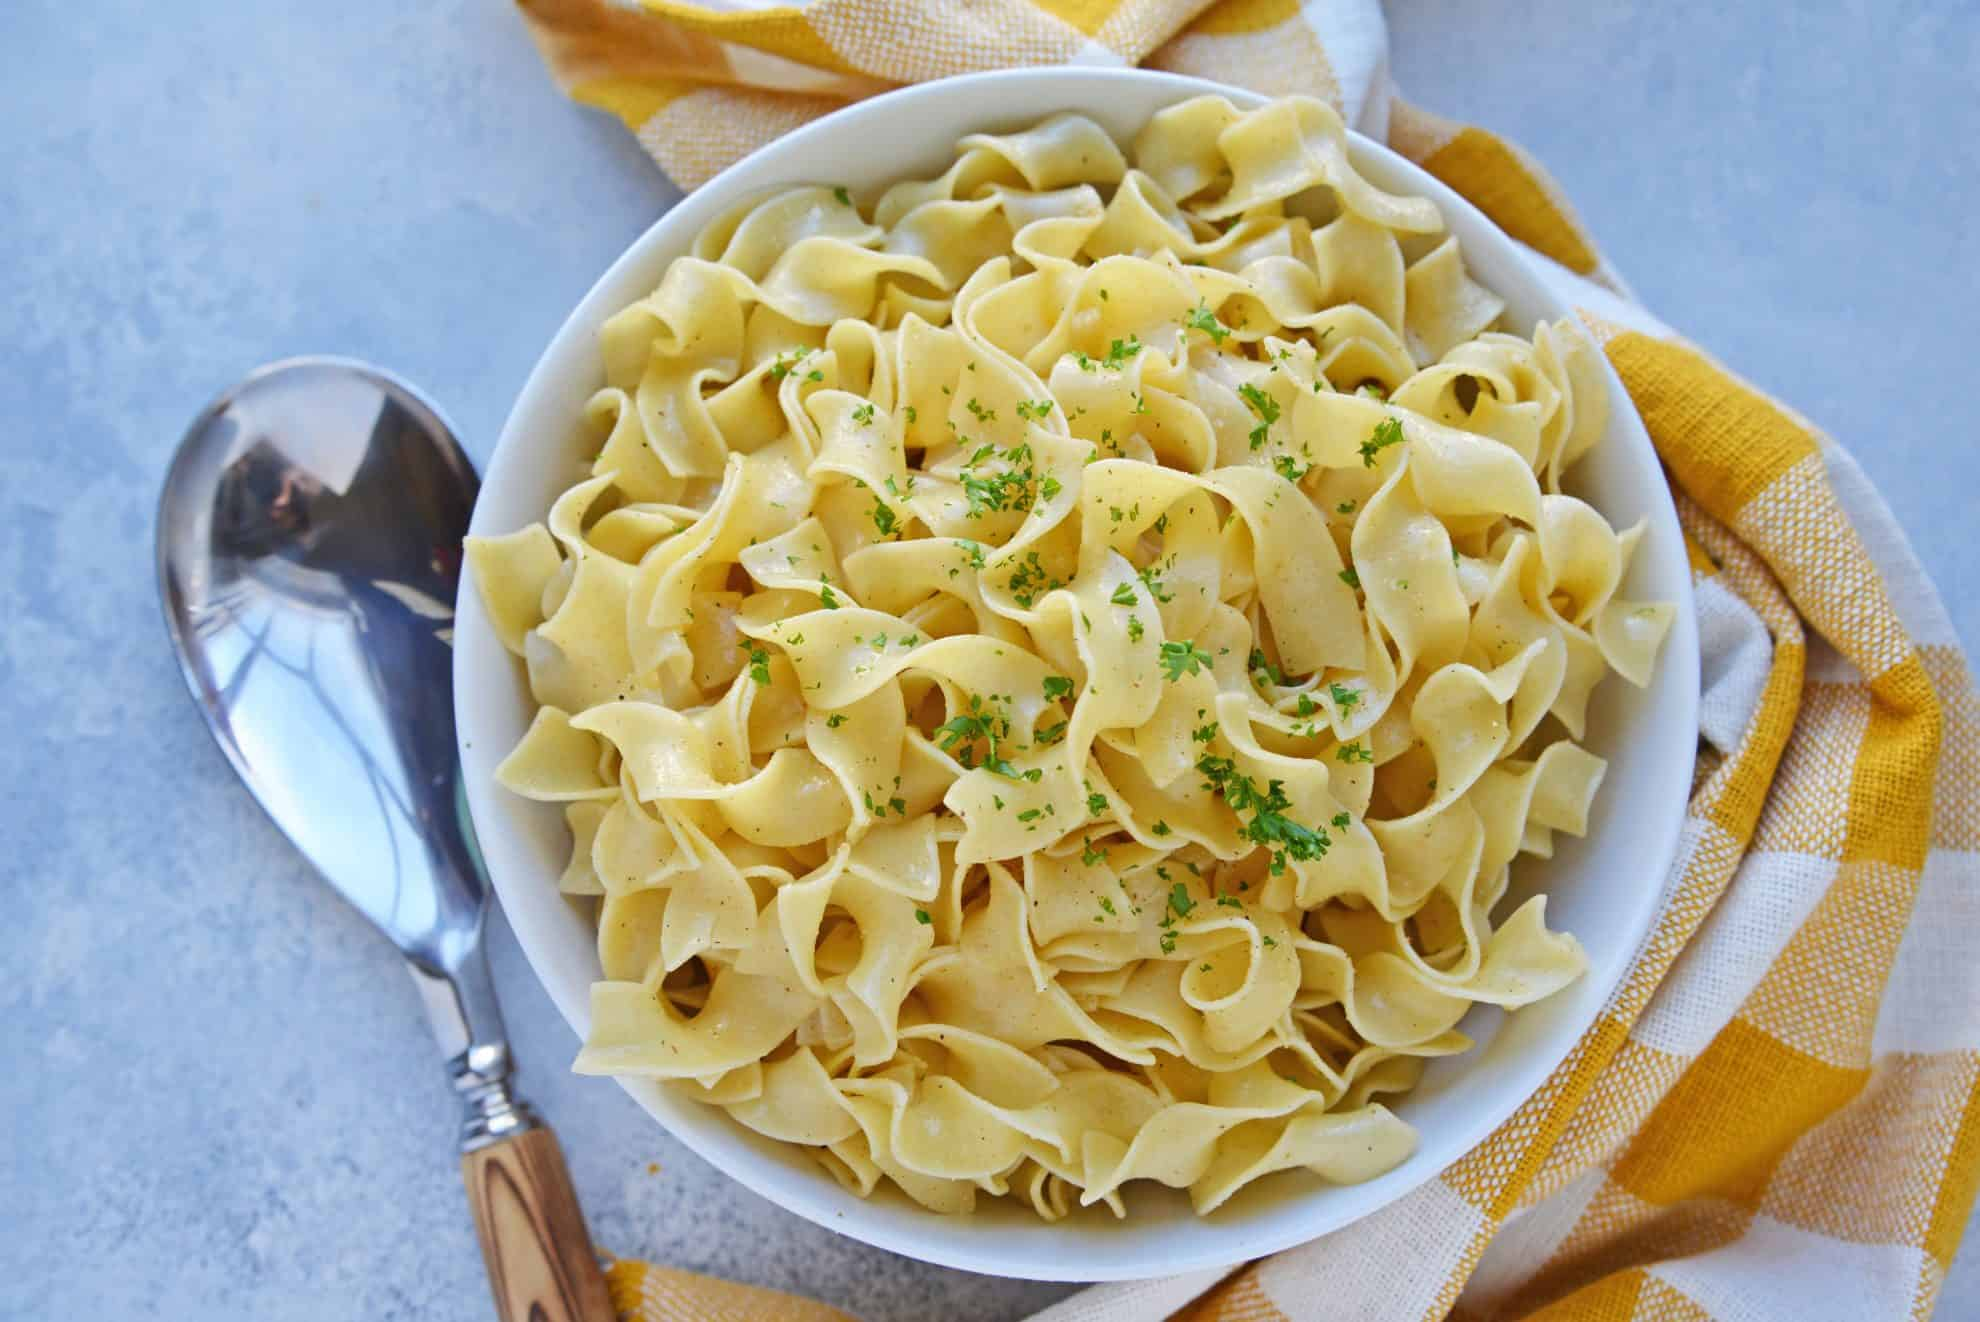 buttered noodles in a serving dish